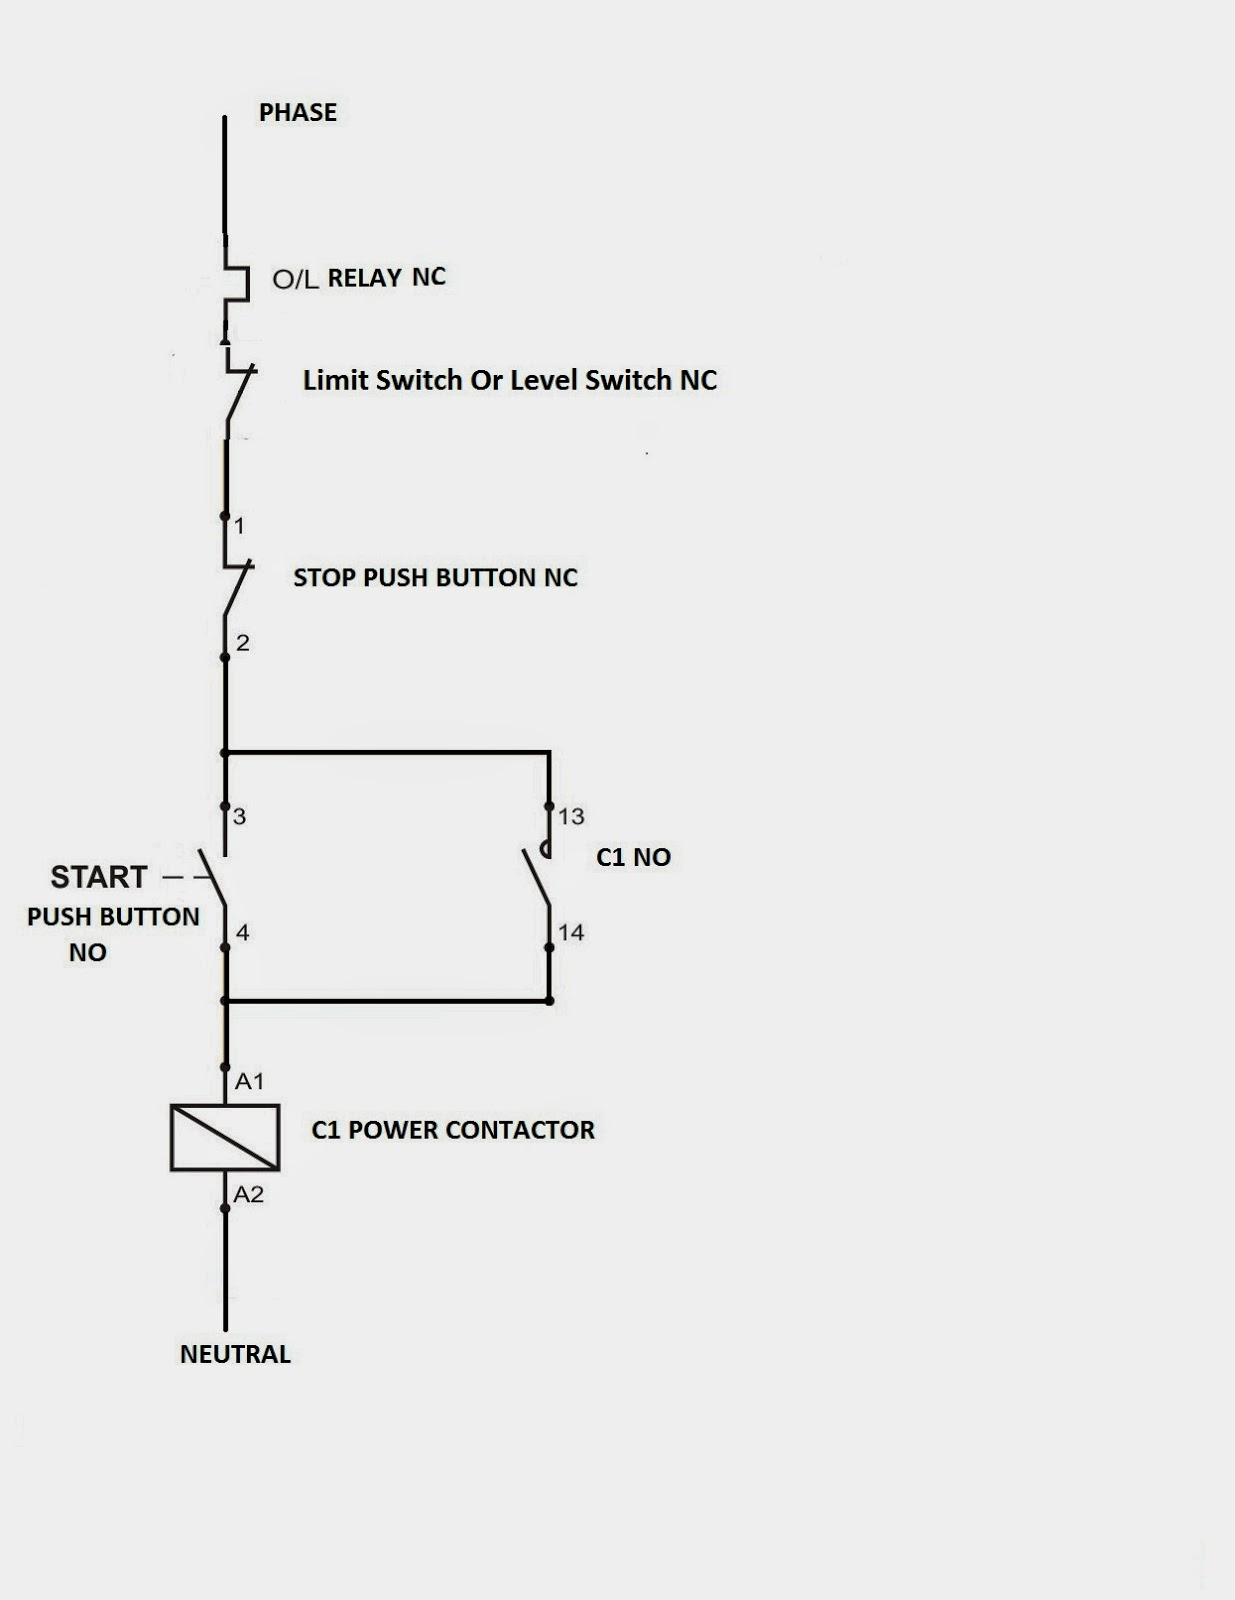 reversing switch wiring diagram with limits wiring librarydol circuit with limit switch; dol level switch circuit